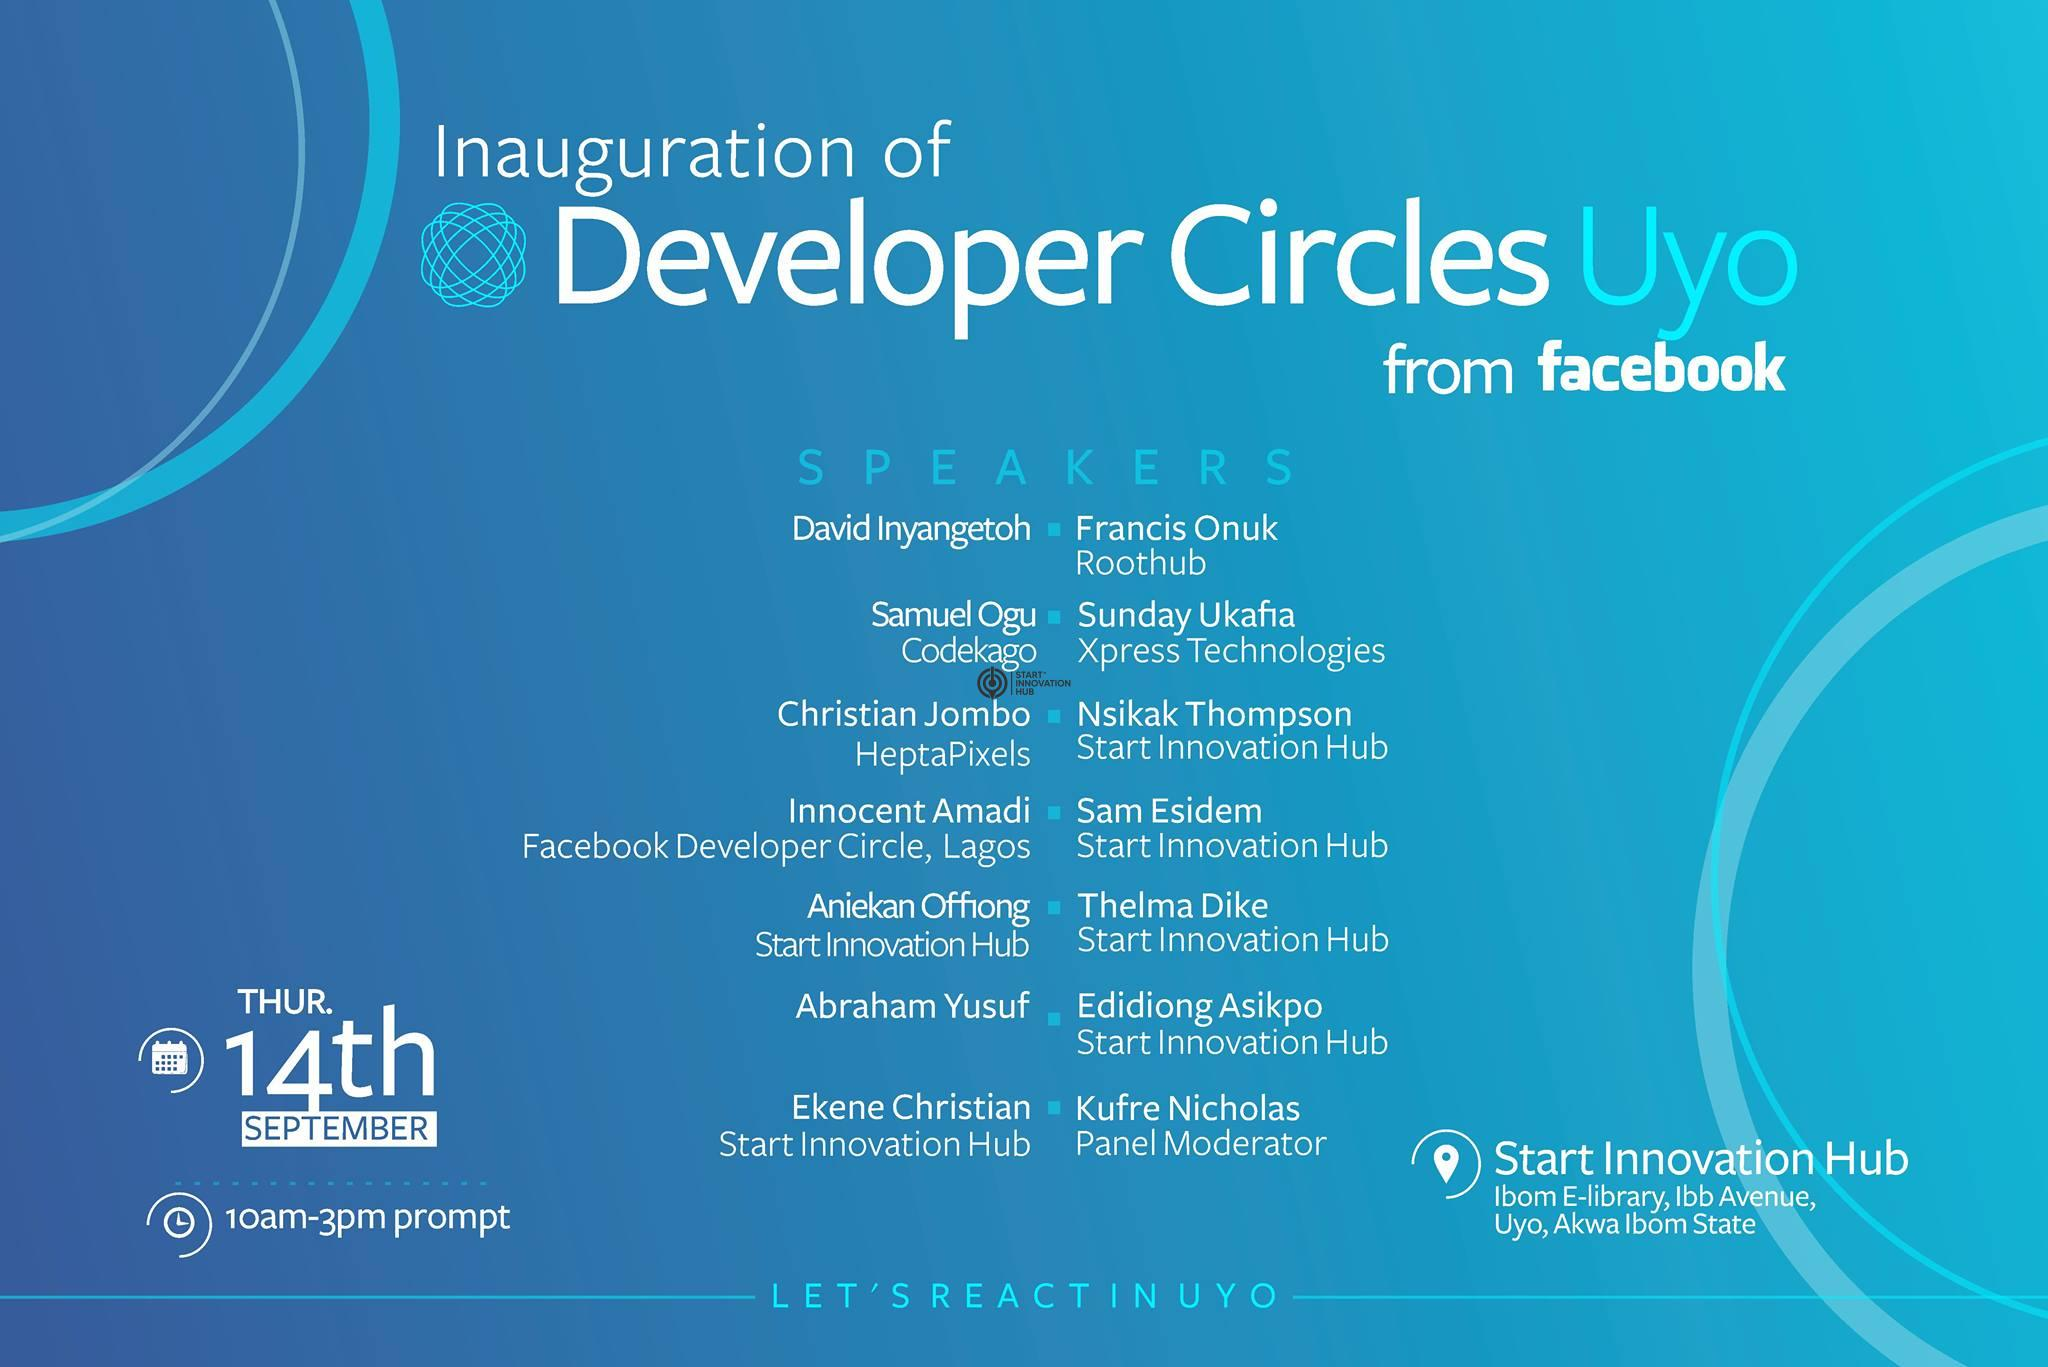 Facebook Developer Circle Uyo Inaugural Event